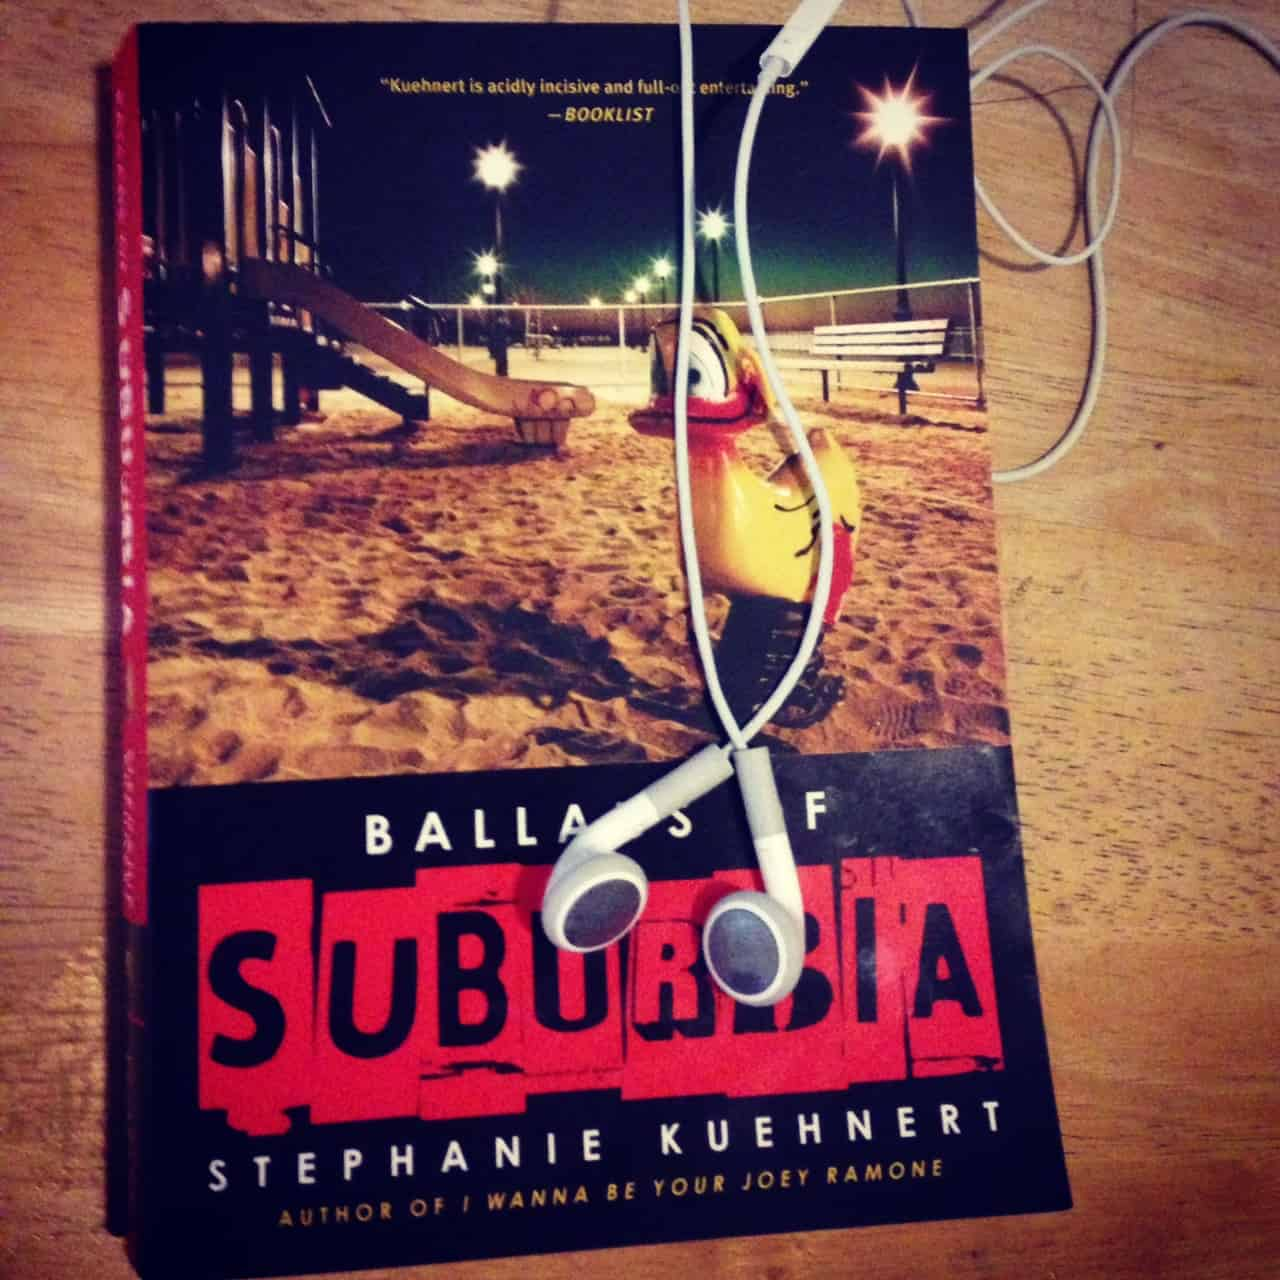 Review: Ballads of Suburbia by Stephanie Keuhnert